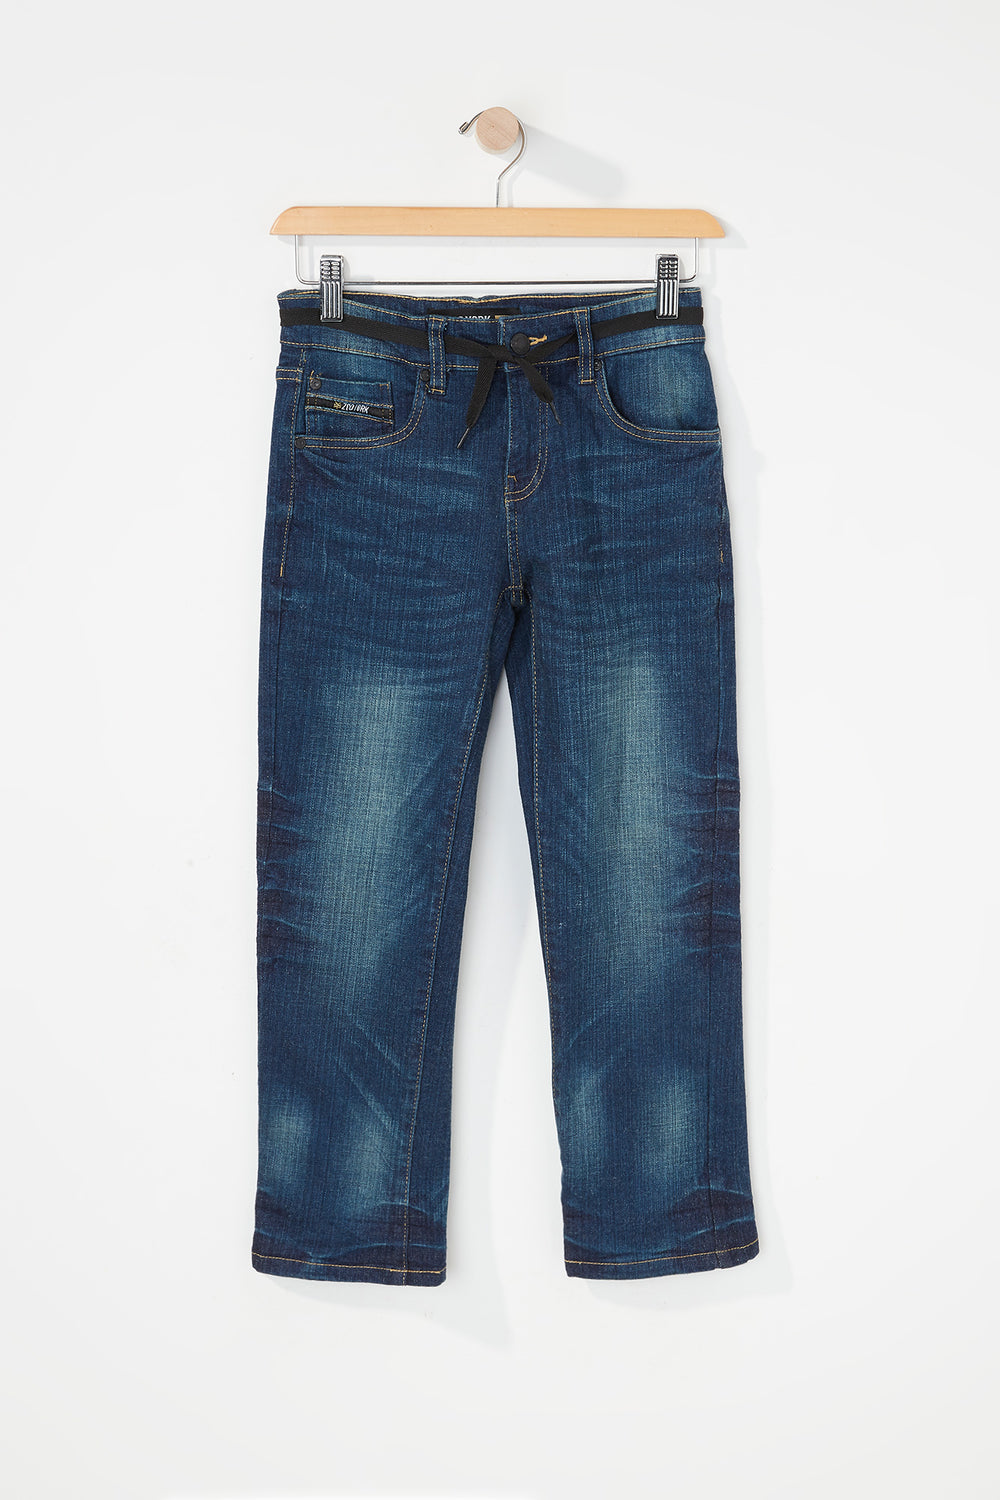 Zoo York Boys 5-Pocket Stretch Slim Jeans Midnight Blue